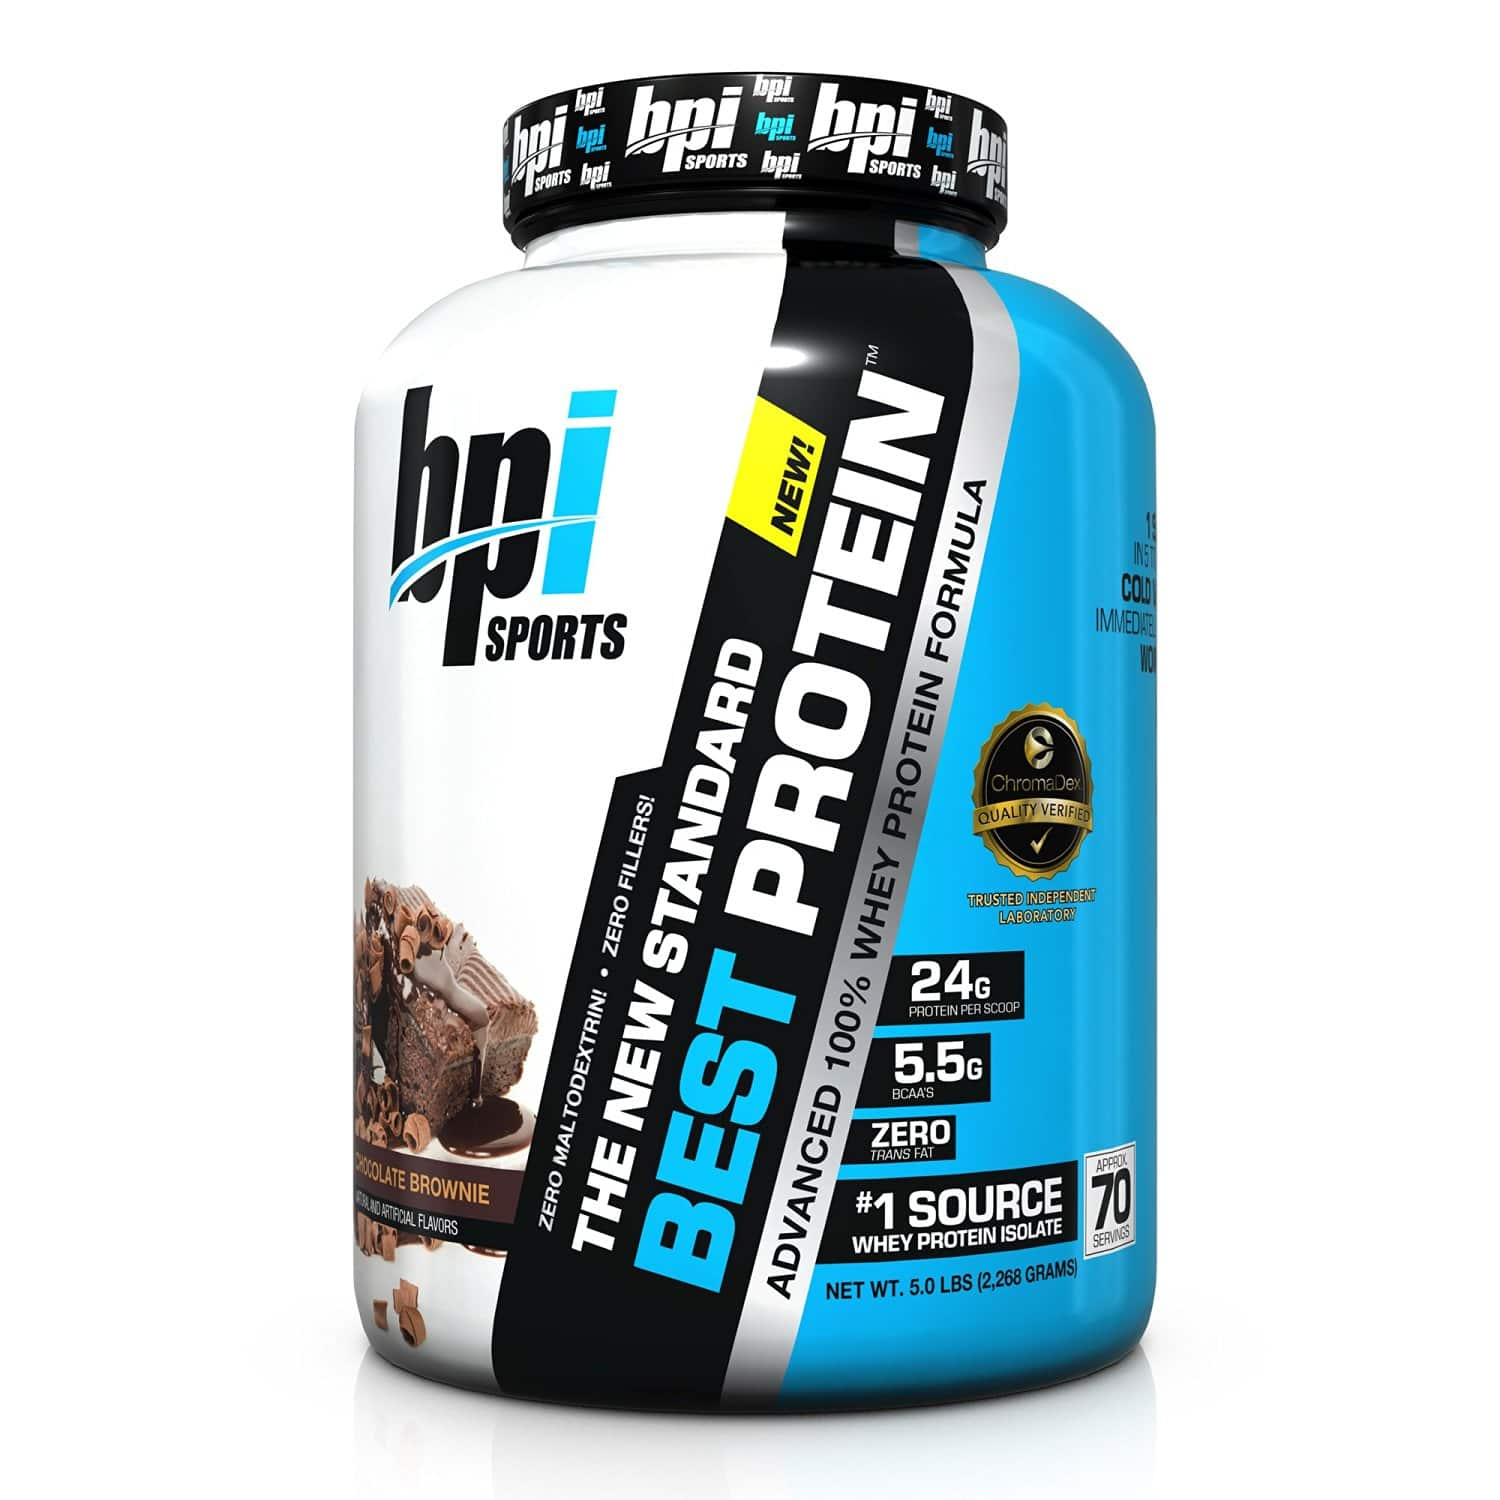 Amazon - BPI Sports Best Protein, Vanilla Swirl, 5 Pound - $25.23 After 30% Coupon + 15% S&S (Other Flavors Available)